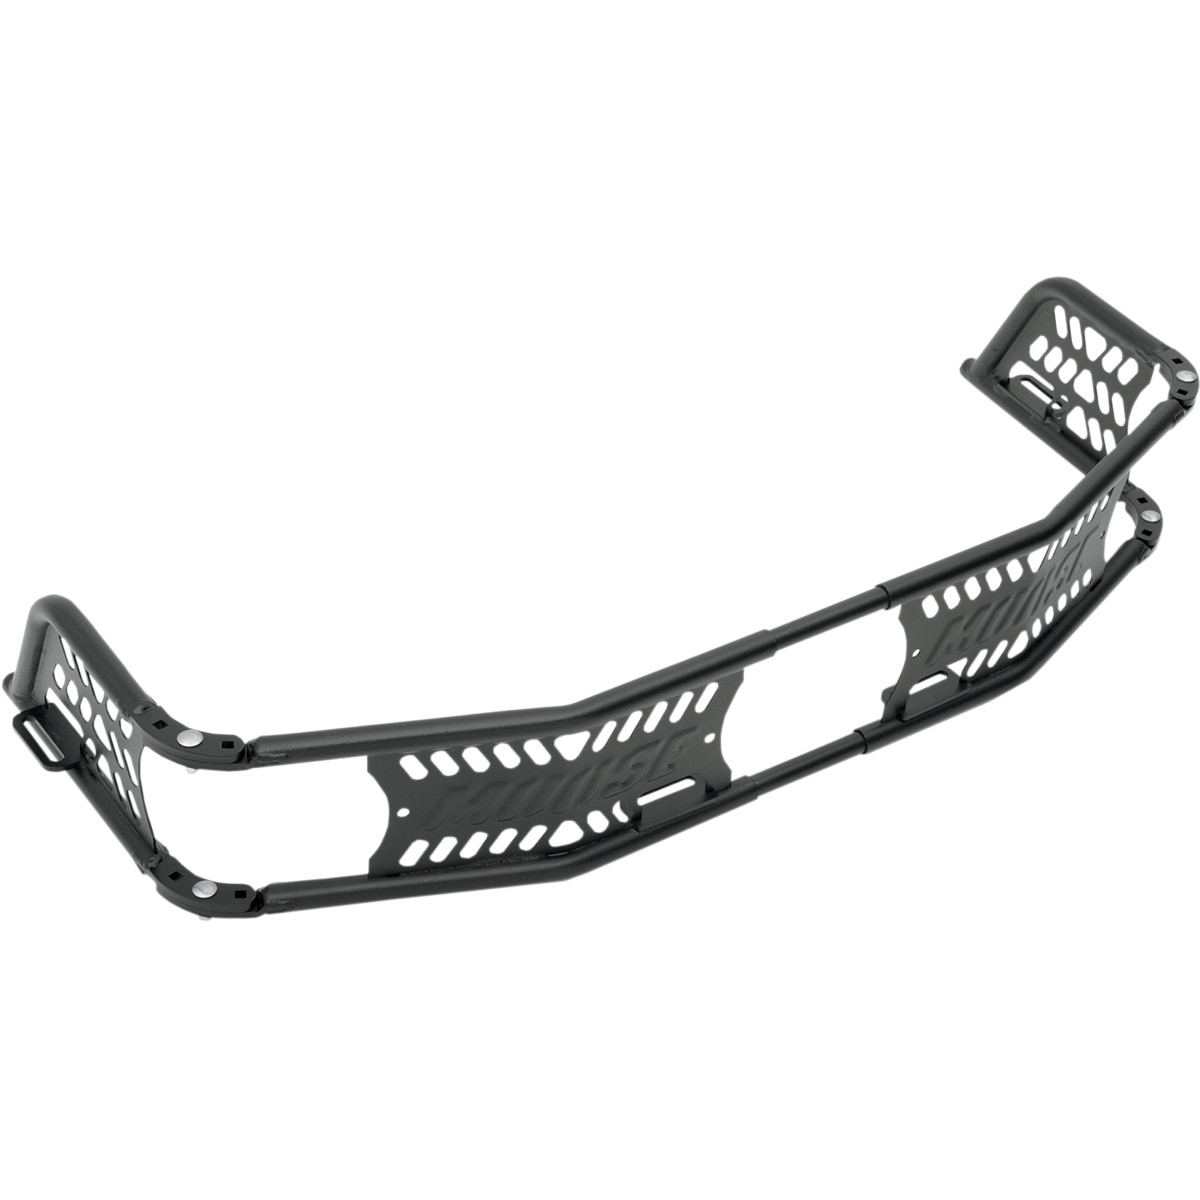 Moose Utility Adjustable Rack Extension Front Angled Fits 2006 Arctic Cat 400 4x4 AUTOMATIC TRV